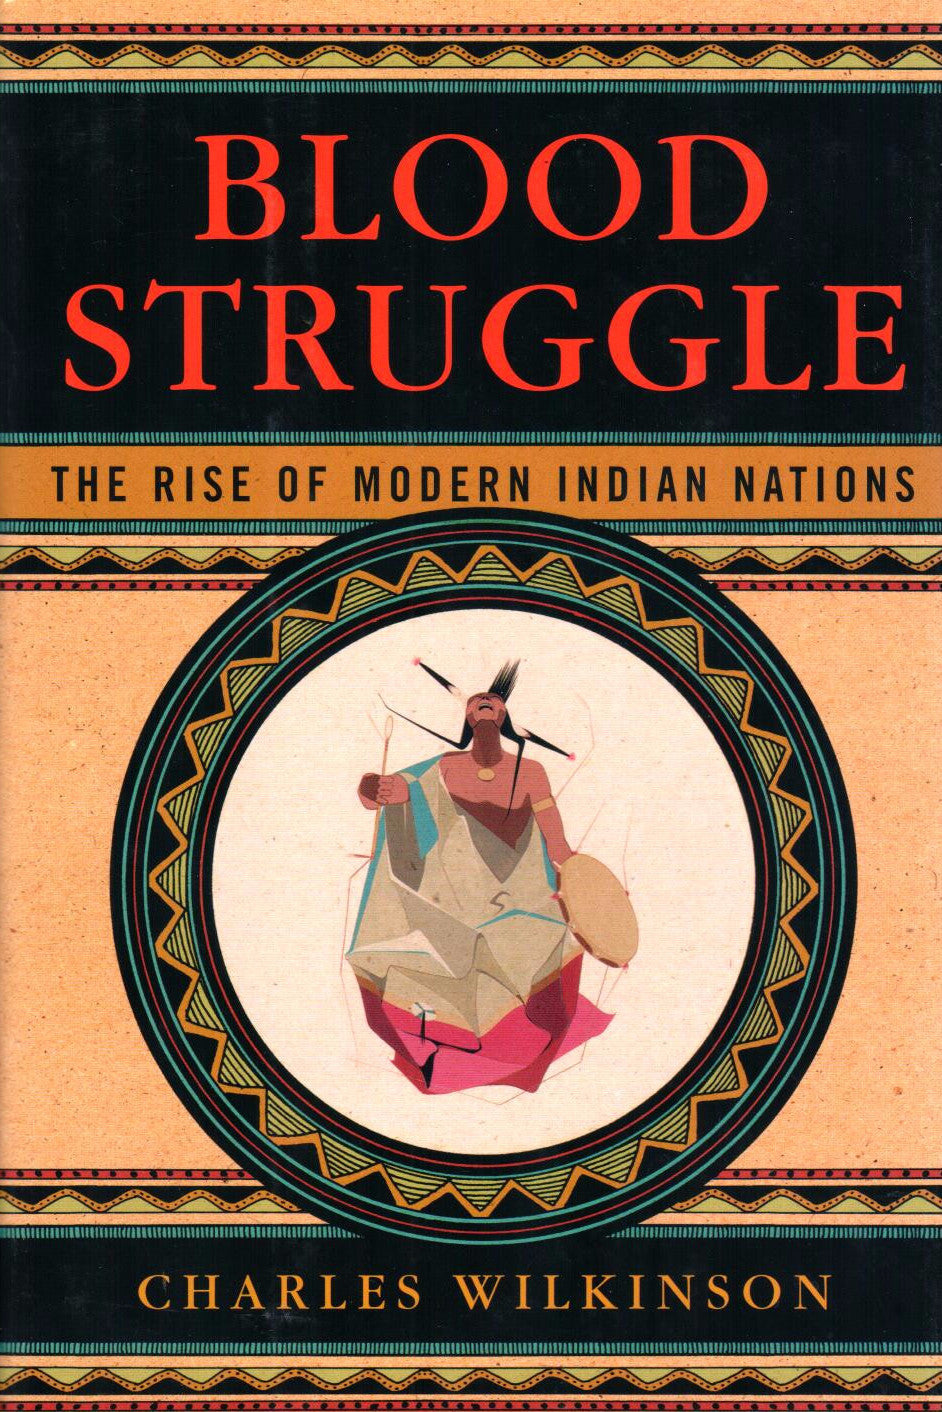 Blood Struggle: the Rise of Modern Indian Nations, by Charles Wilkinson - Washington State Historical Society